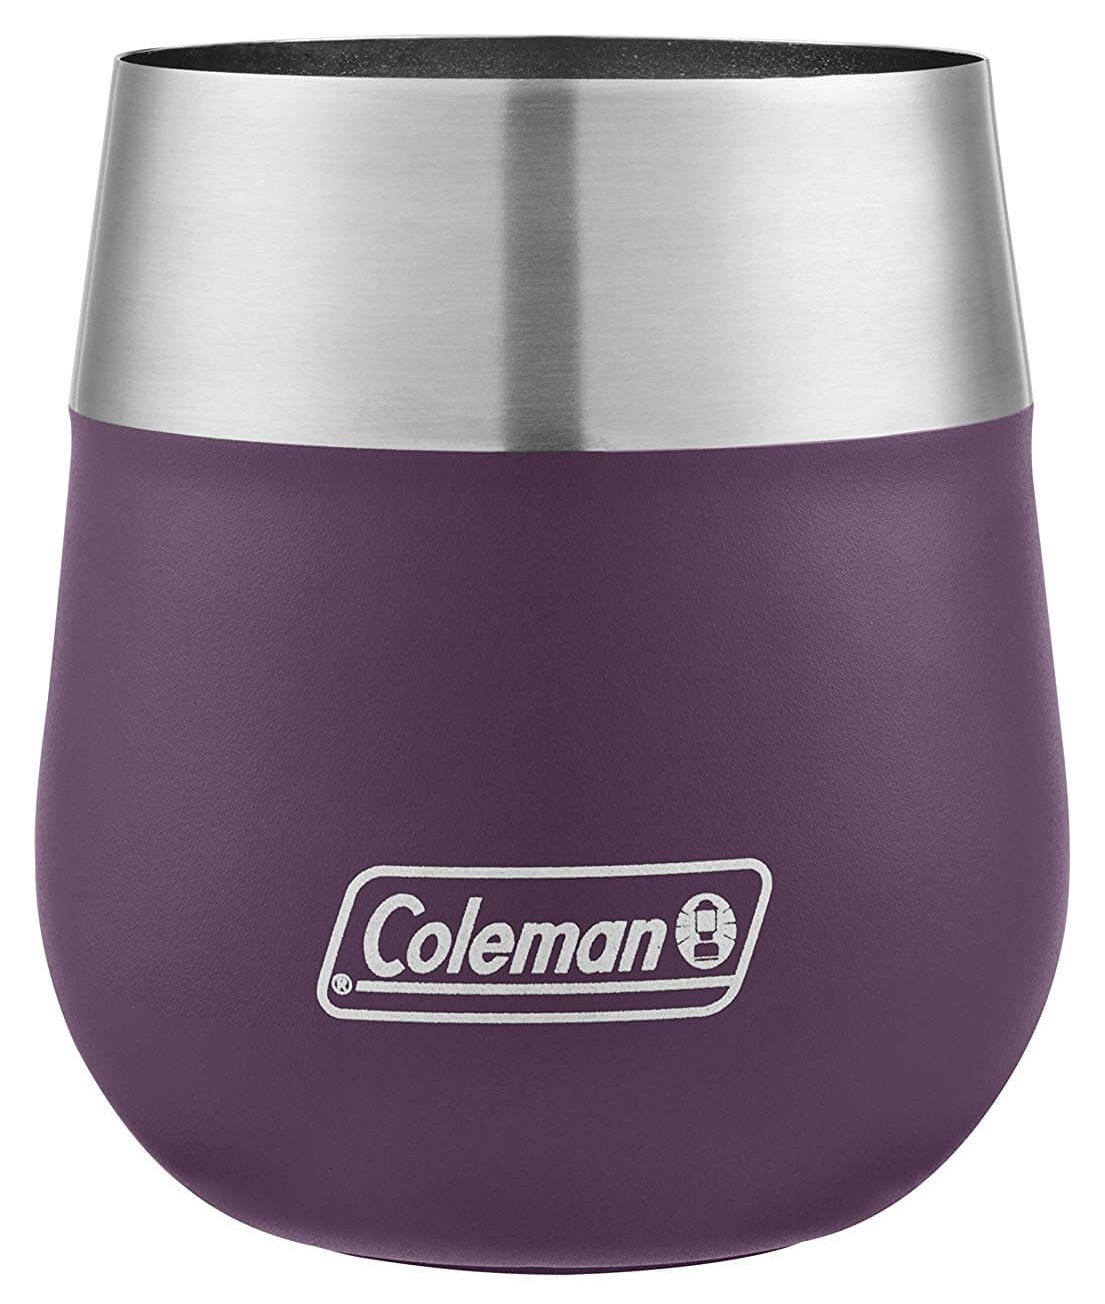 Coleman Claret Insulated Stainless Steel Wine Glass Violet